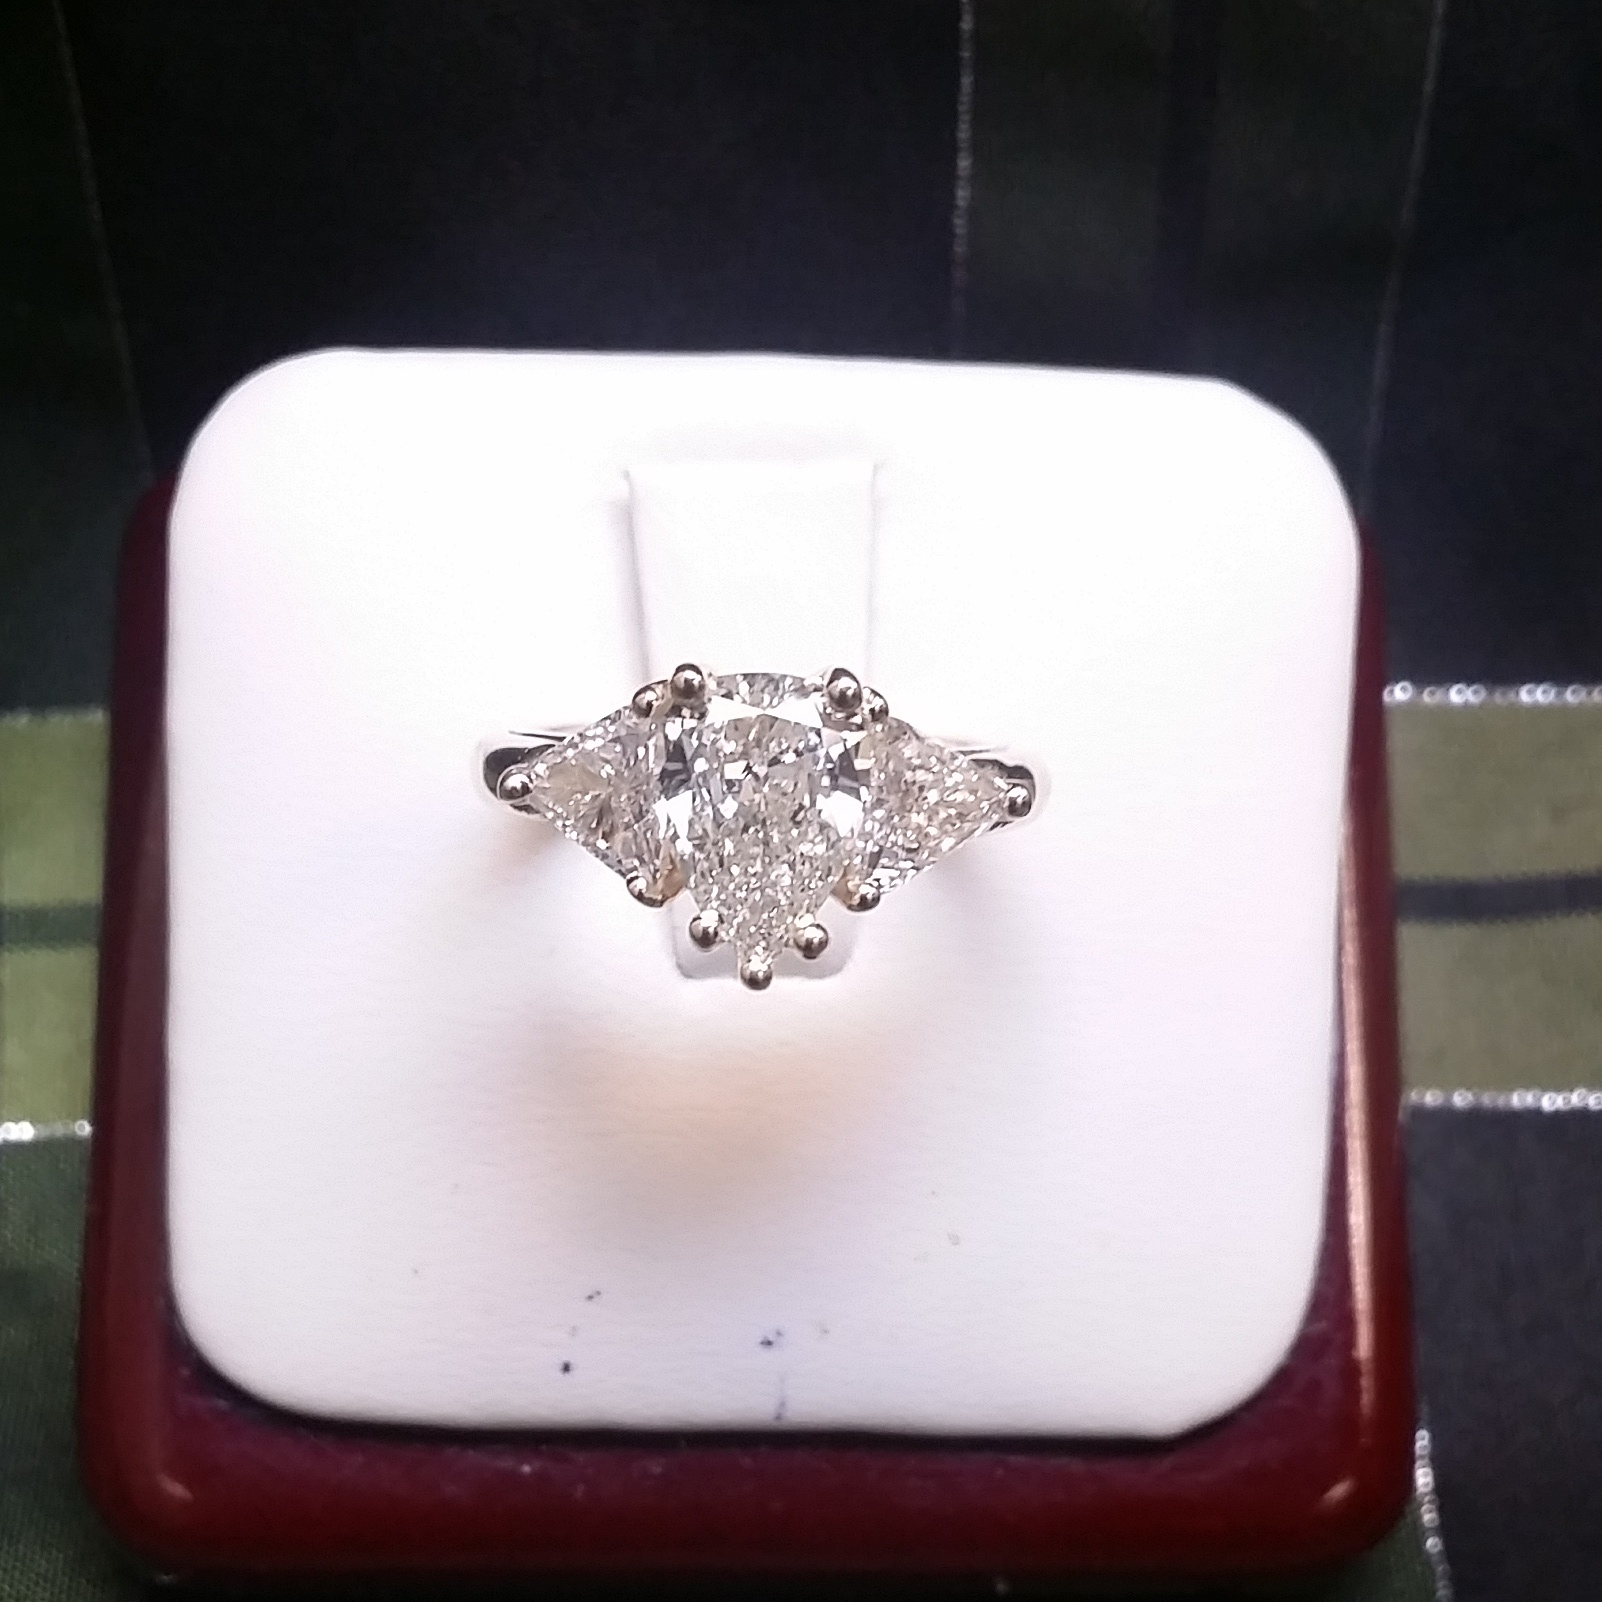 Elizabeth's engagement ring